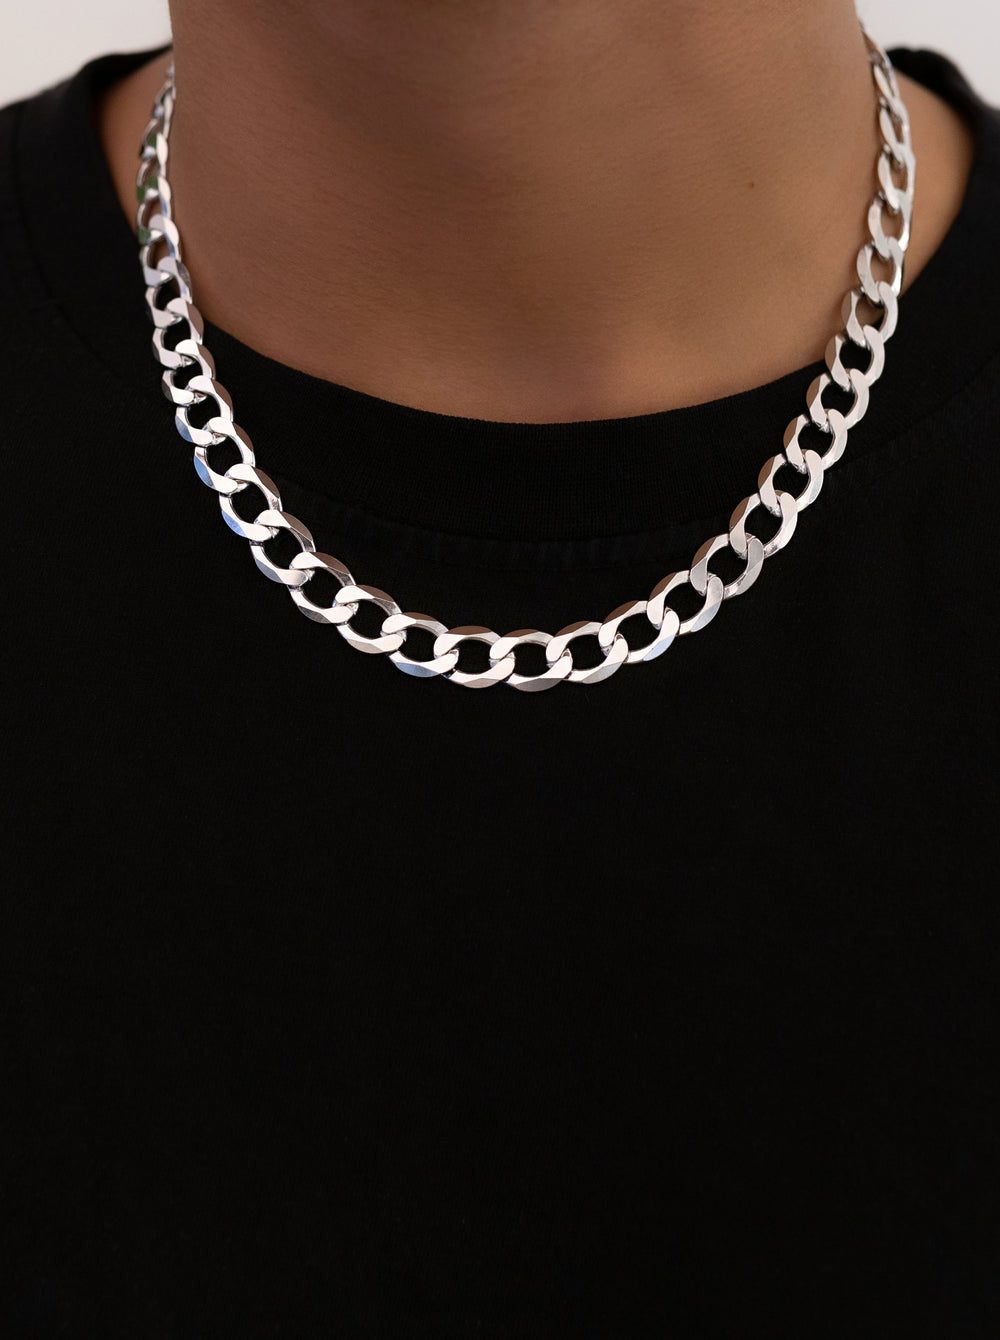 THE FLAT CURB CHAIN NECKLACE